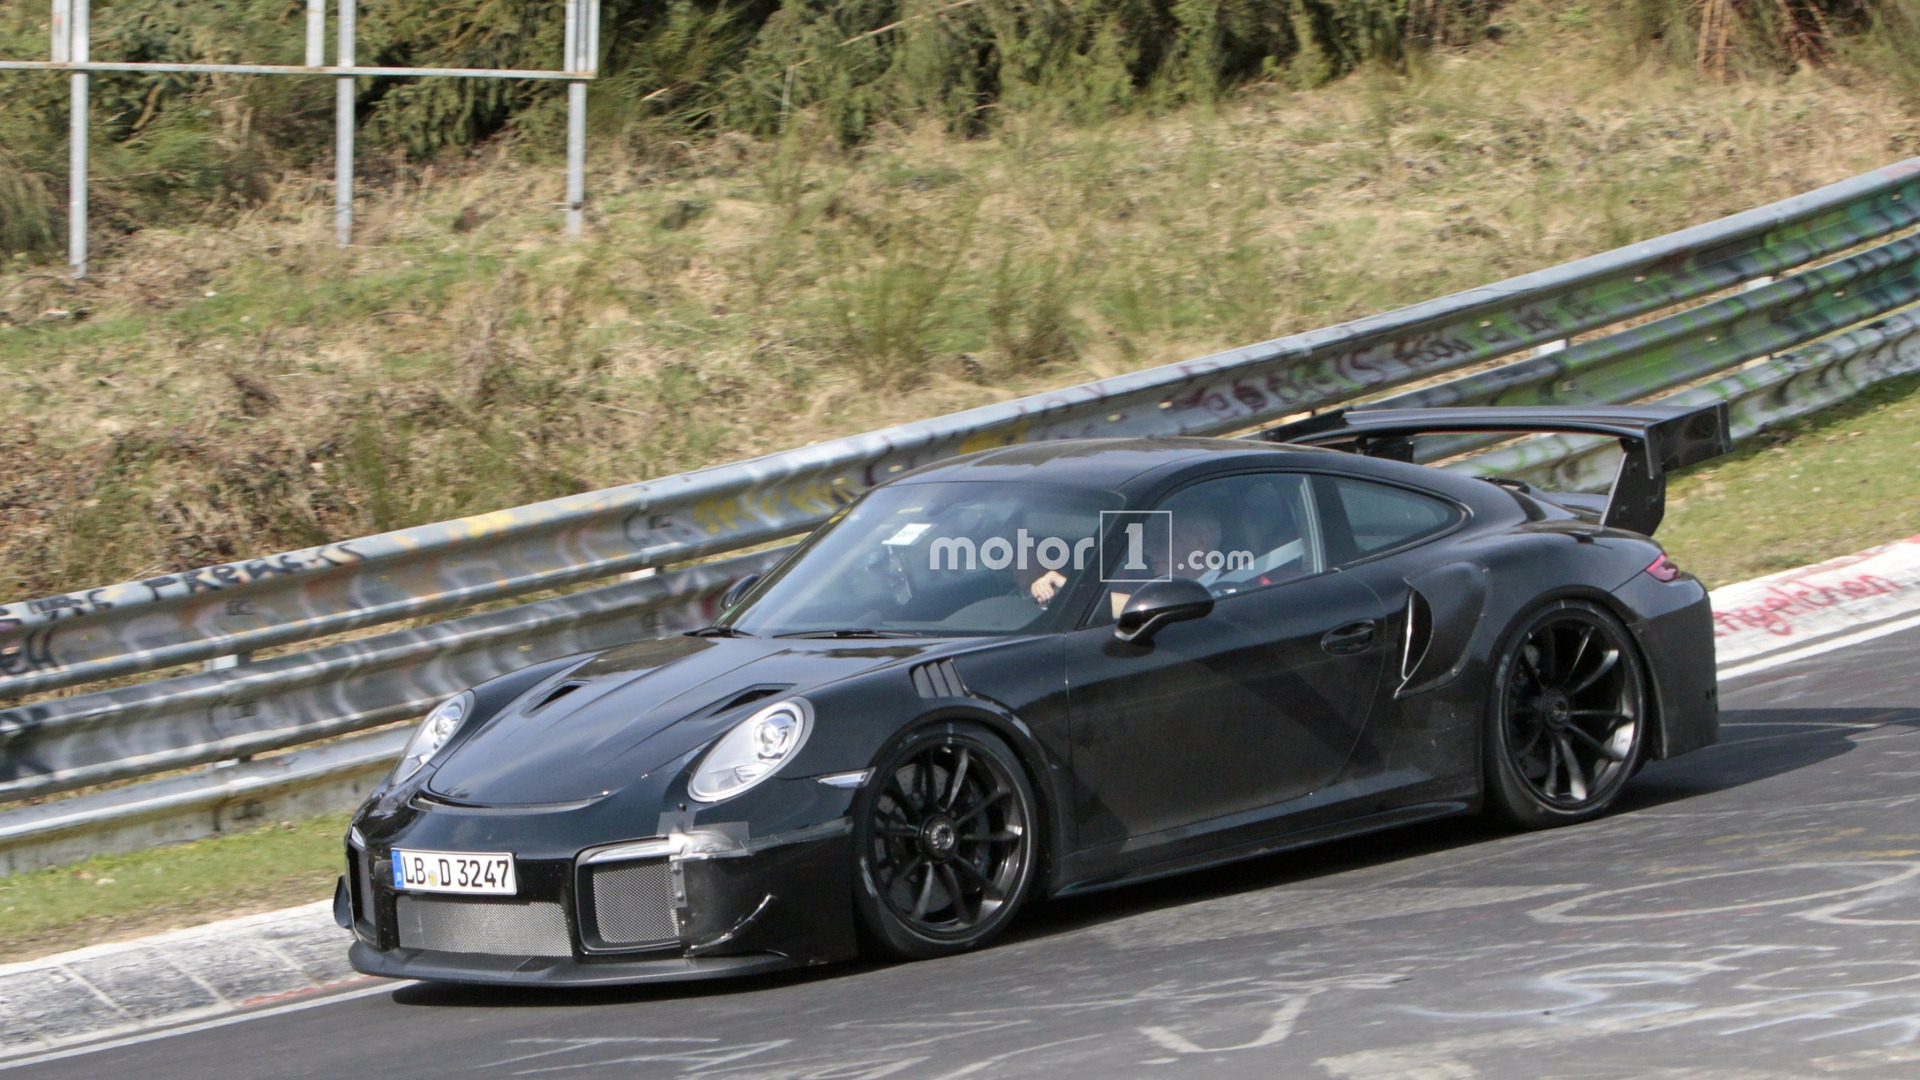 2018-porsche-911-gt2-spy-photo Breathtaking How Many Porsche 911 Gt2 Were Made Cars Trend